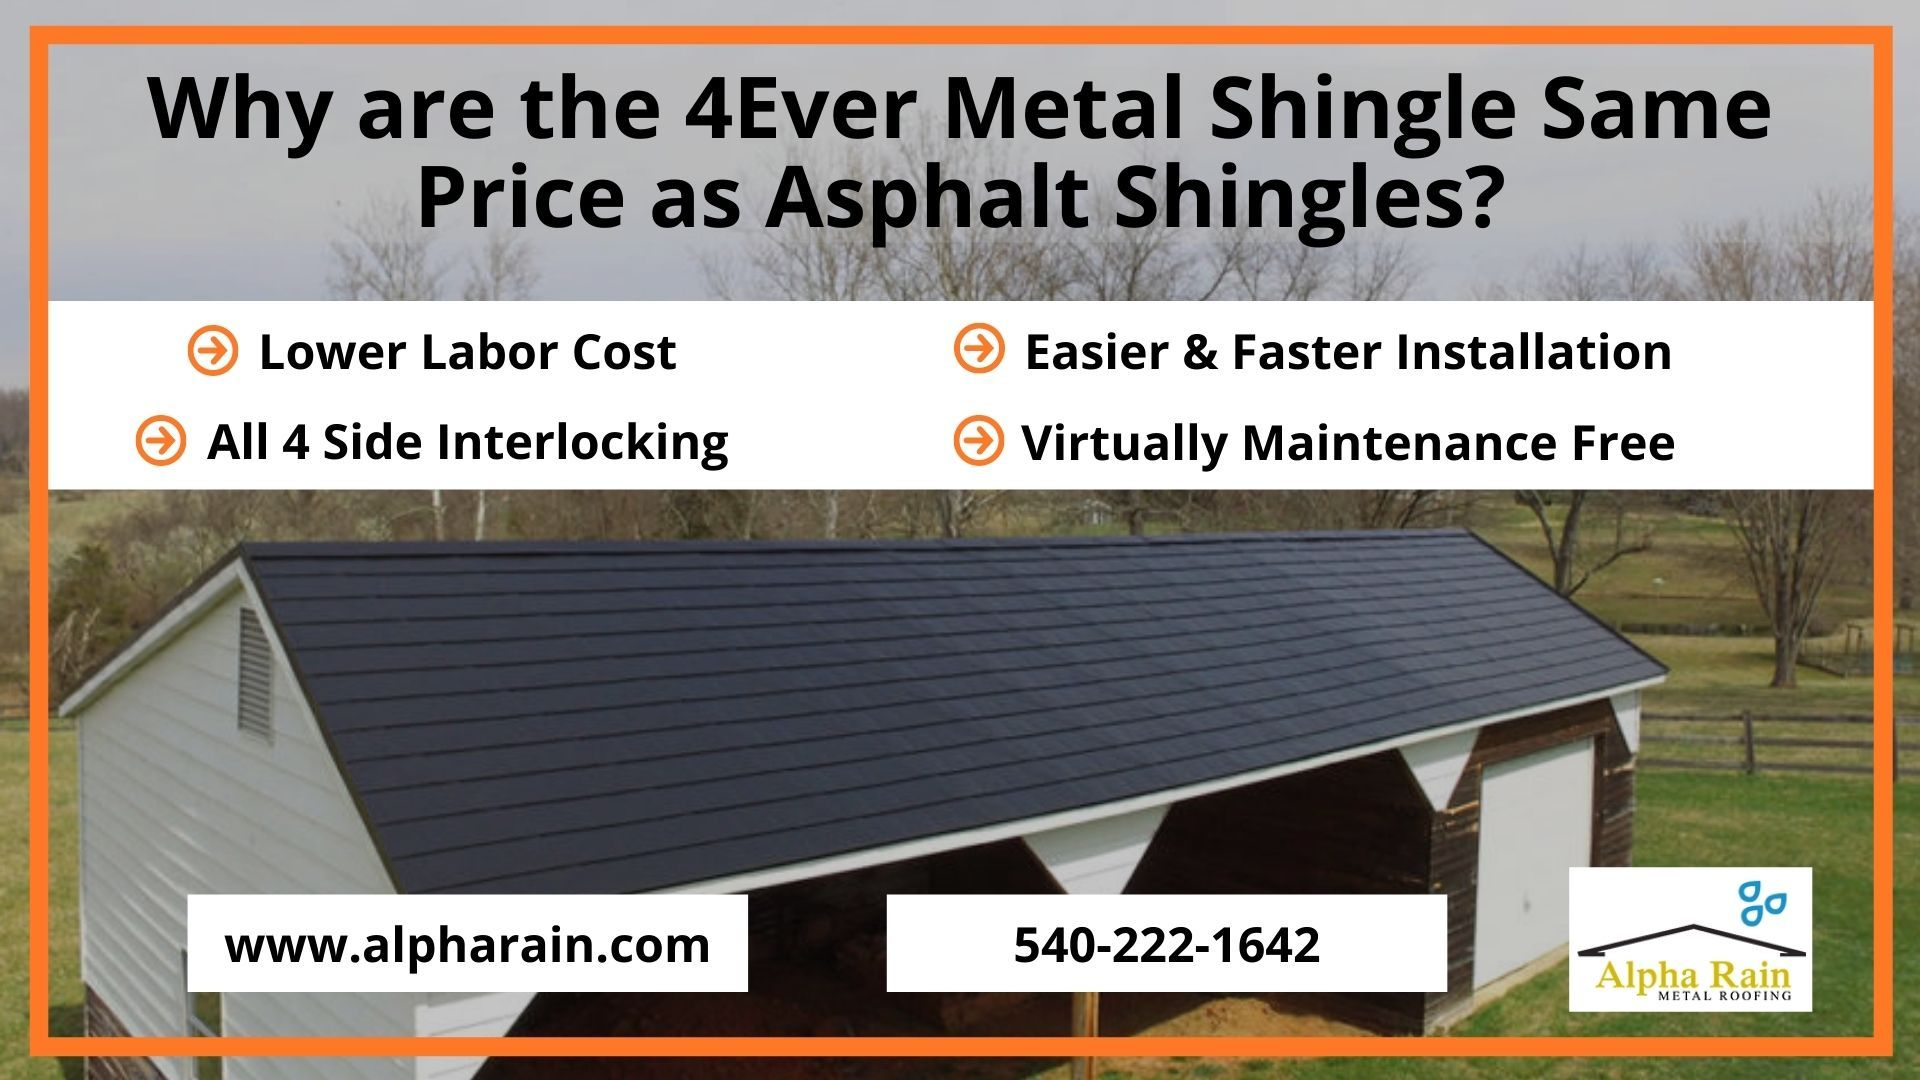 4ever Metal Shingle Installation With Low Labor Cost In 2020 Metal Shingles Shingling Metal Shingle Roof